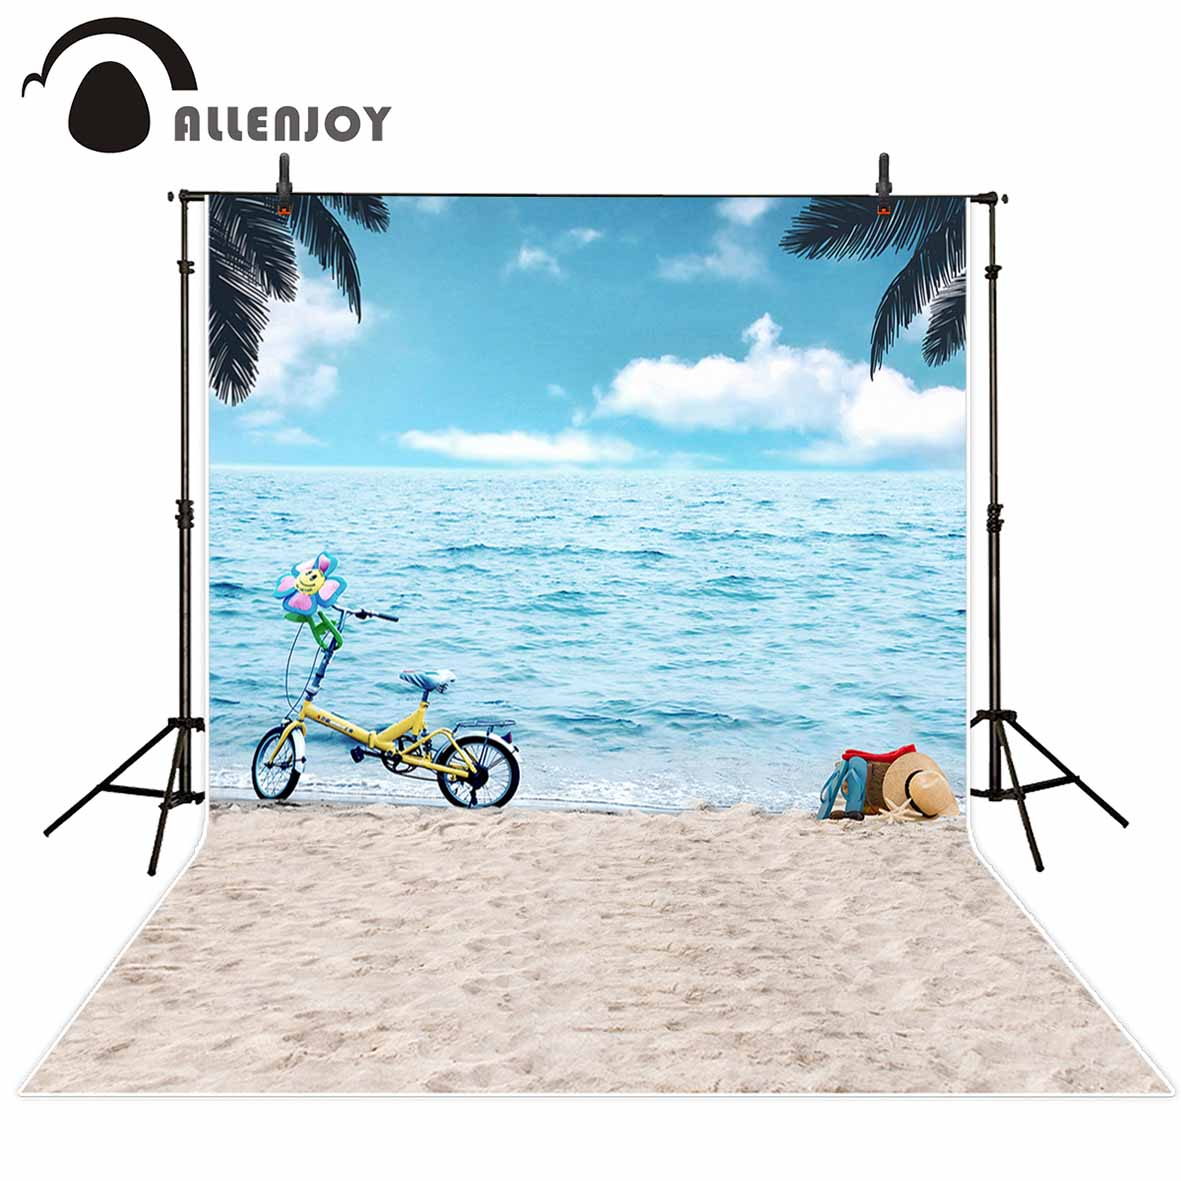 Allenjoy photography backdrop Summer blue ocean holiday children's beach new background photocall customize photo printed